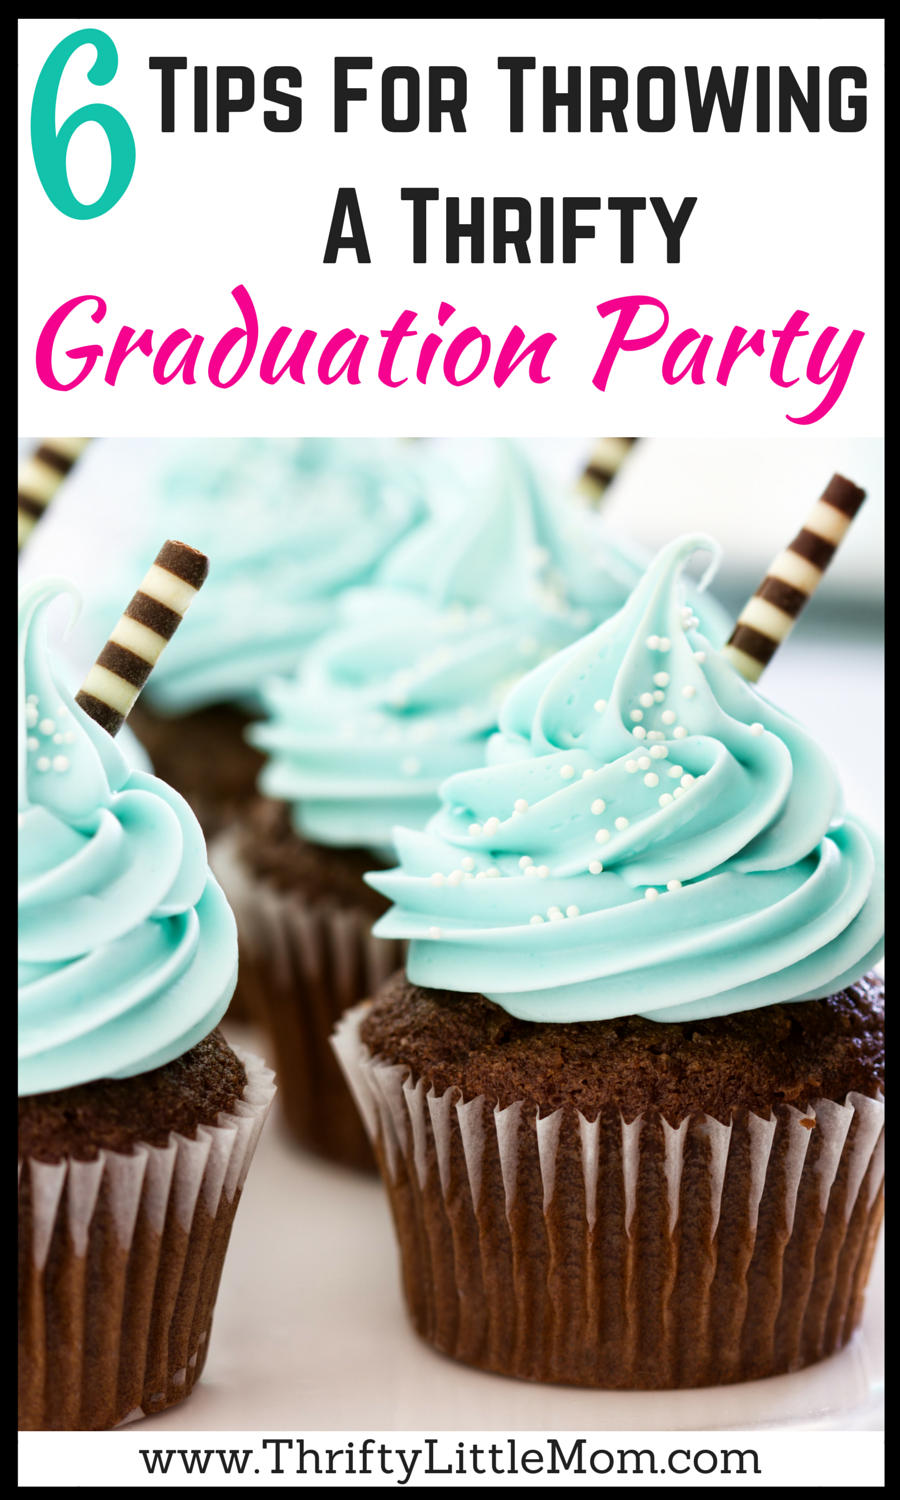 Tips for Throwing a Thrifty Graduation Party